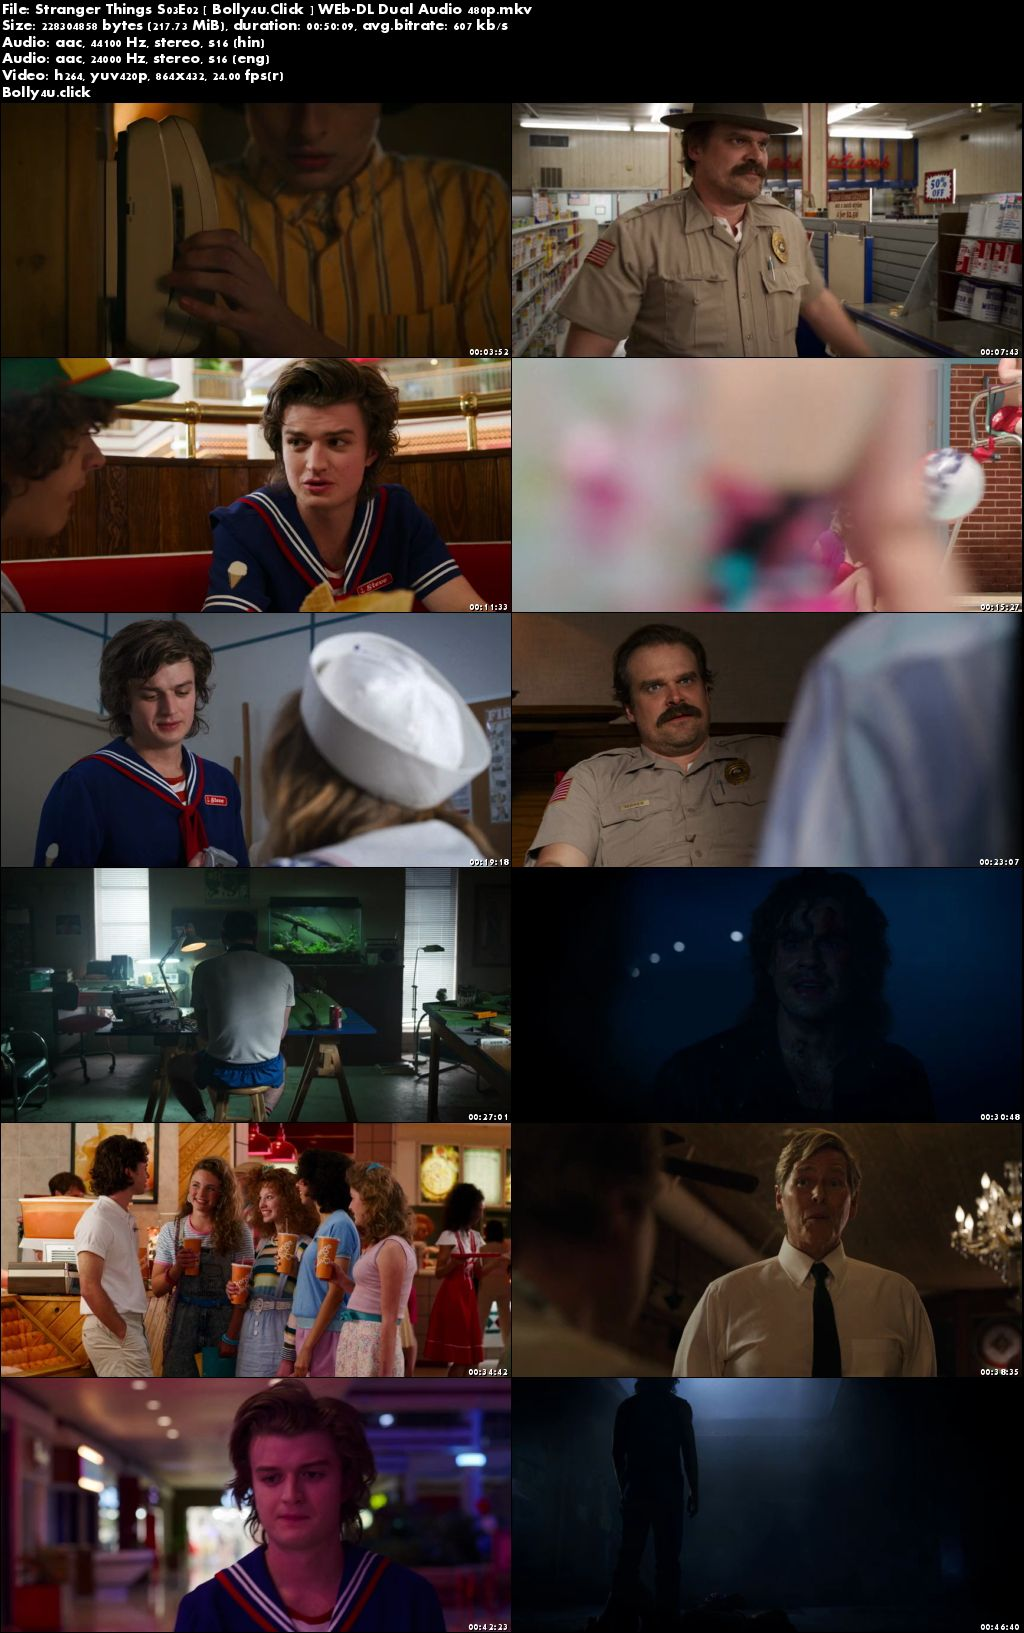 Stranger Things S03 WEB-DL 1.8GB Hindi Dual Audio Complete 480p Download